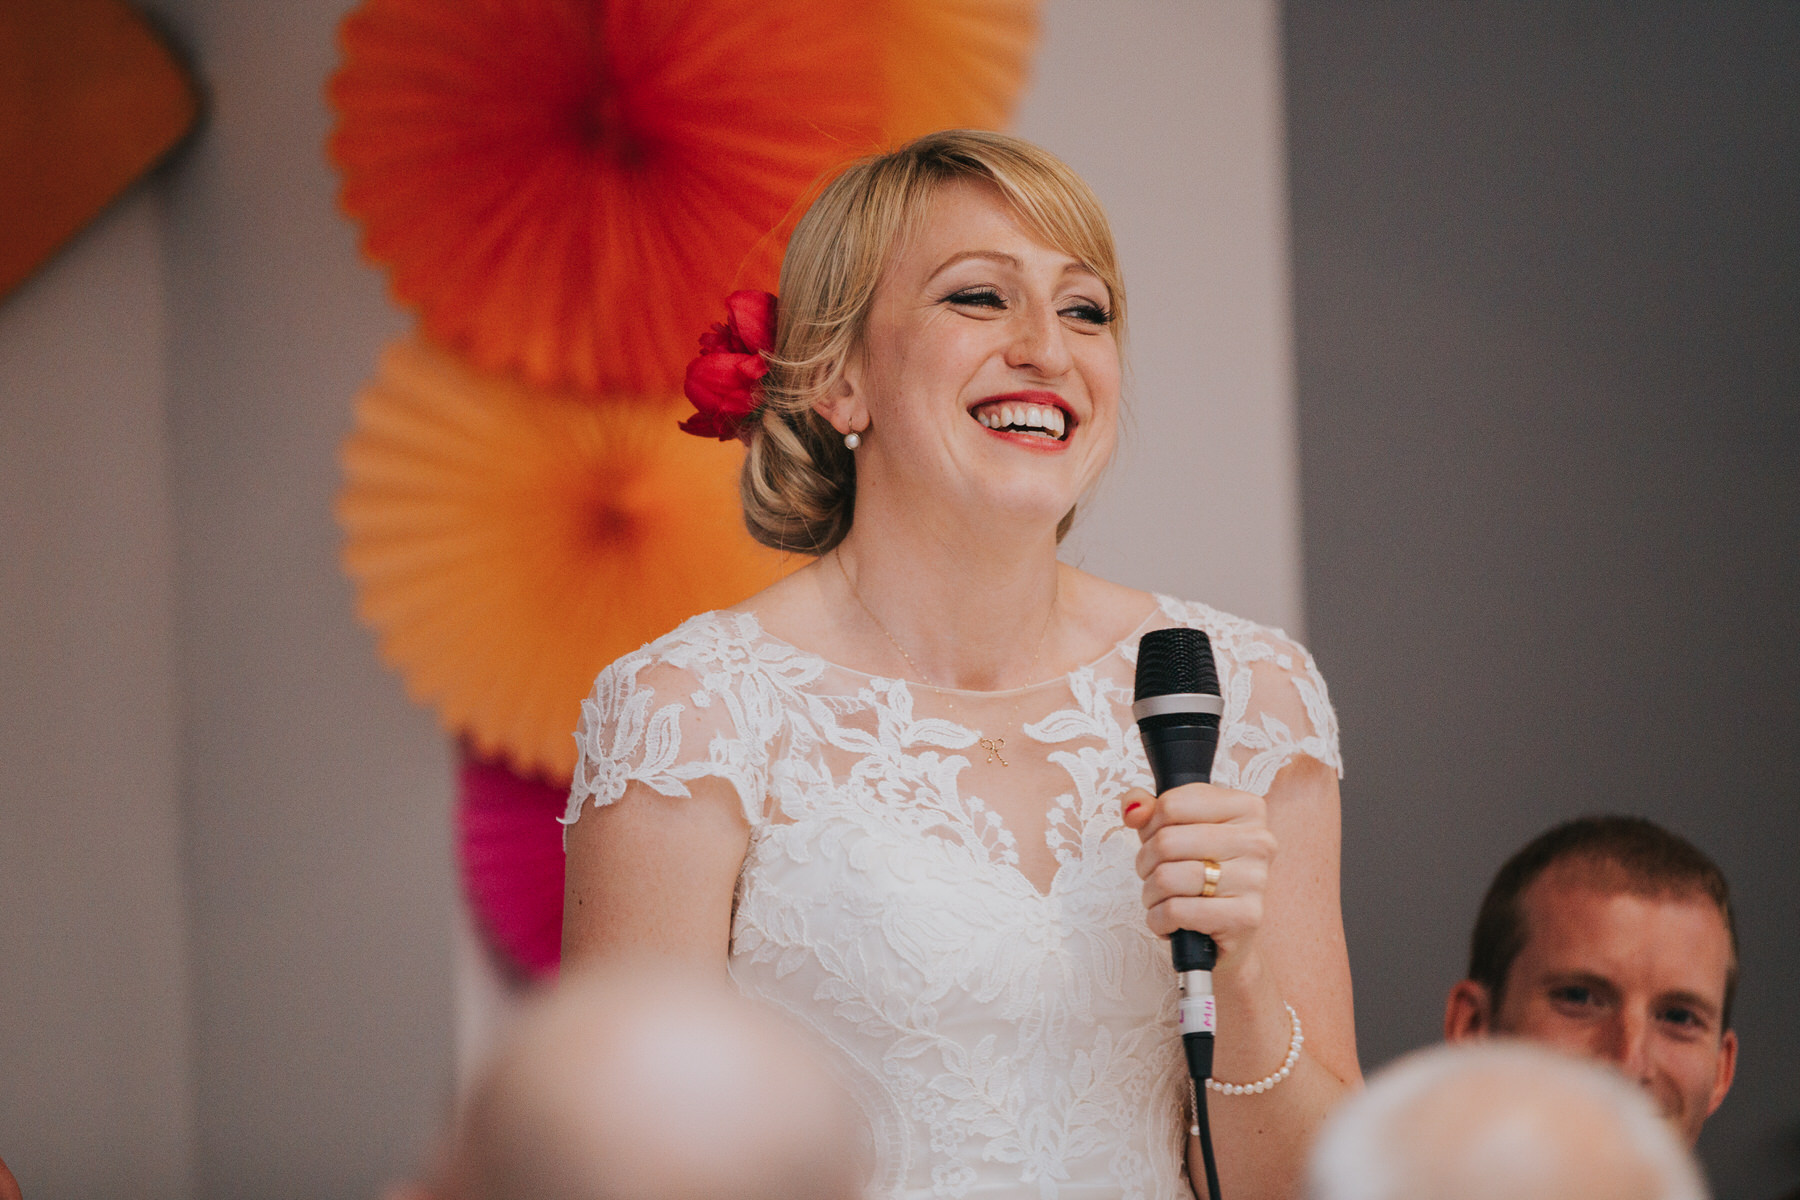 Lea Rowing Club wedding radiant bride giving speech.jpg